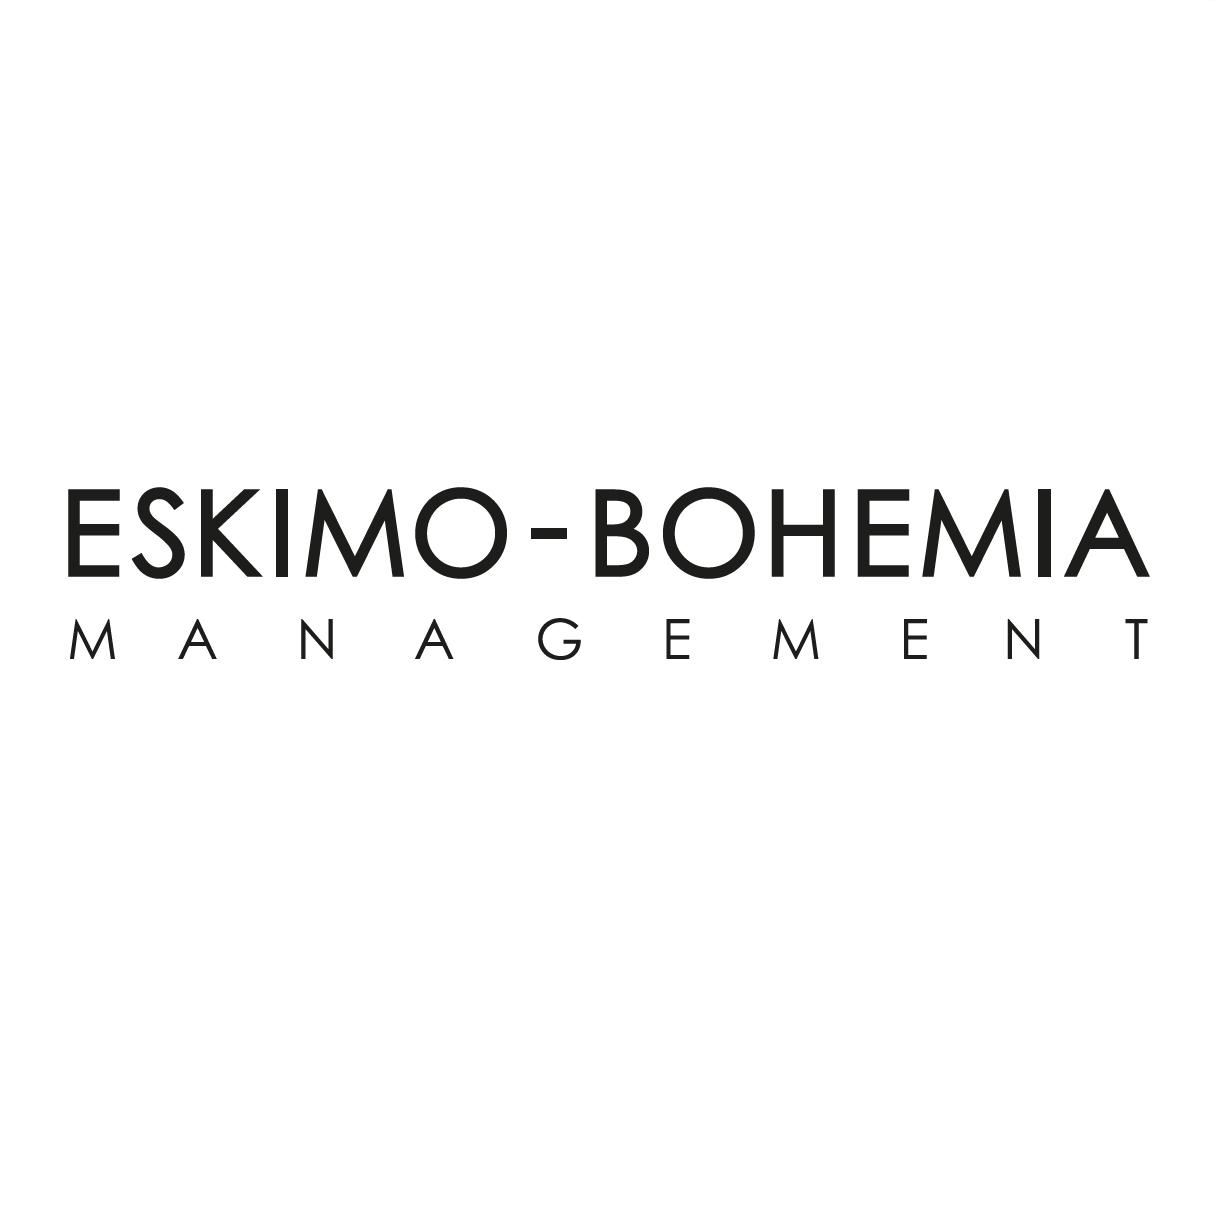 Eskimo Bohemia Model Management, s.r.o